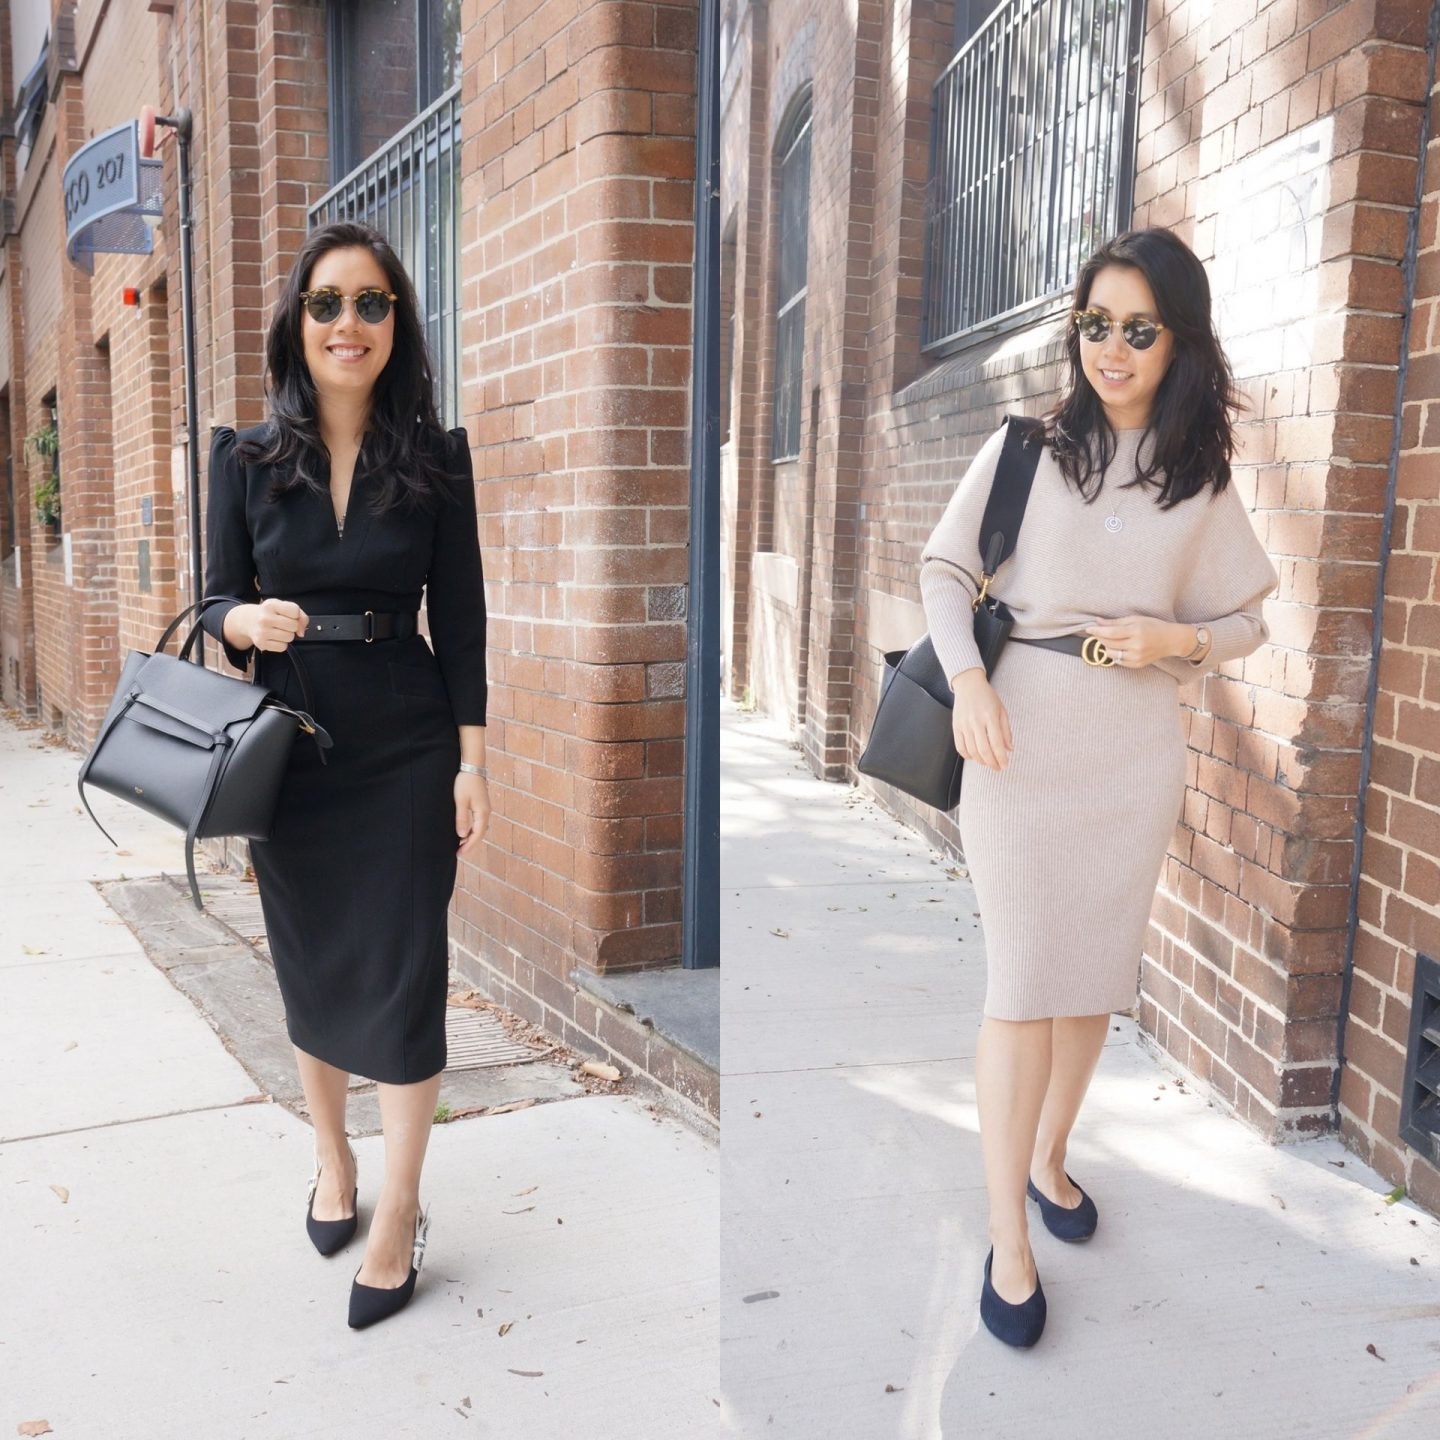 power dresses in blog post about power dressing outfits and inspiration featuring karen millen dress and reiss dress